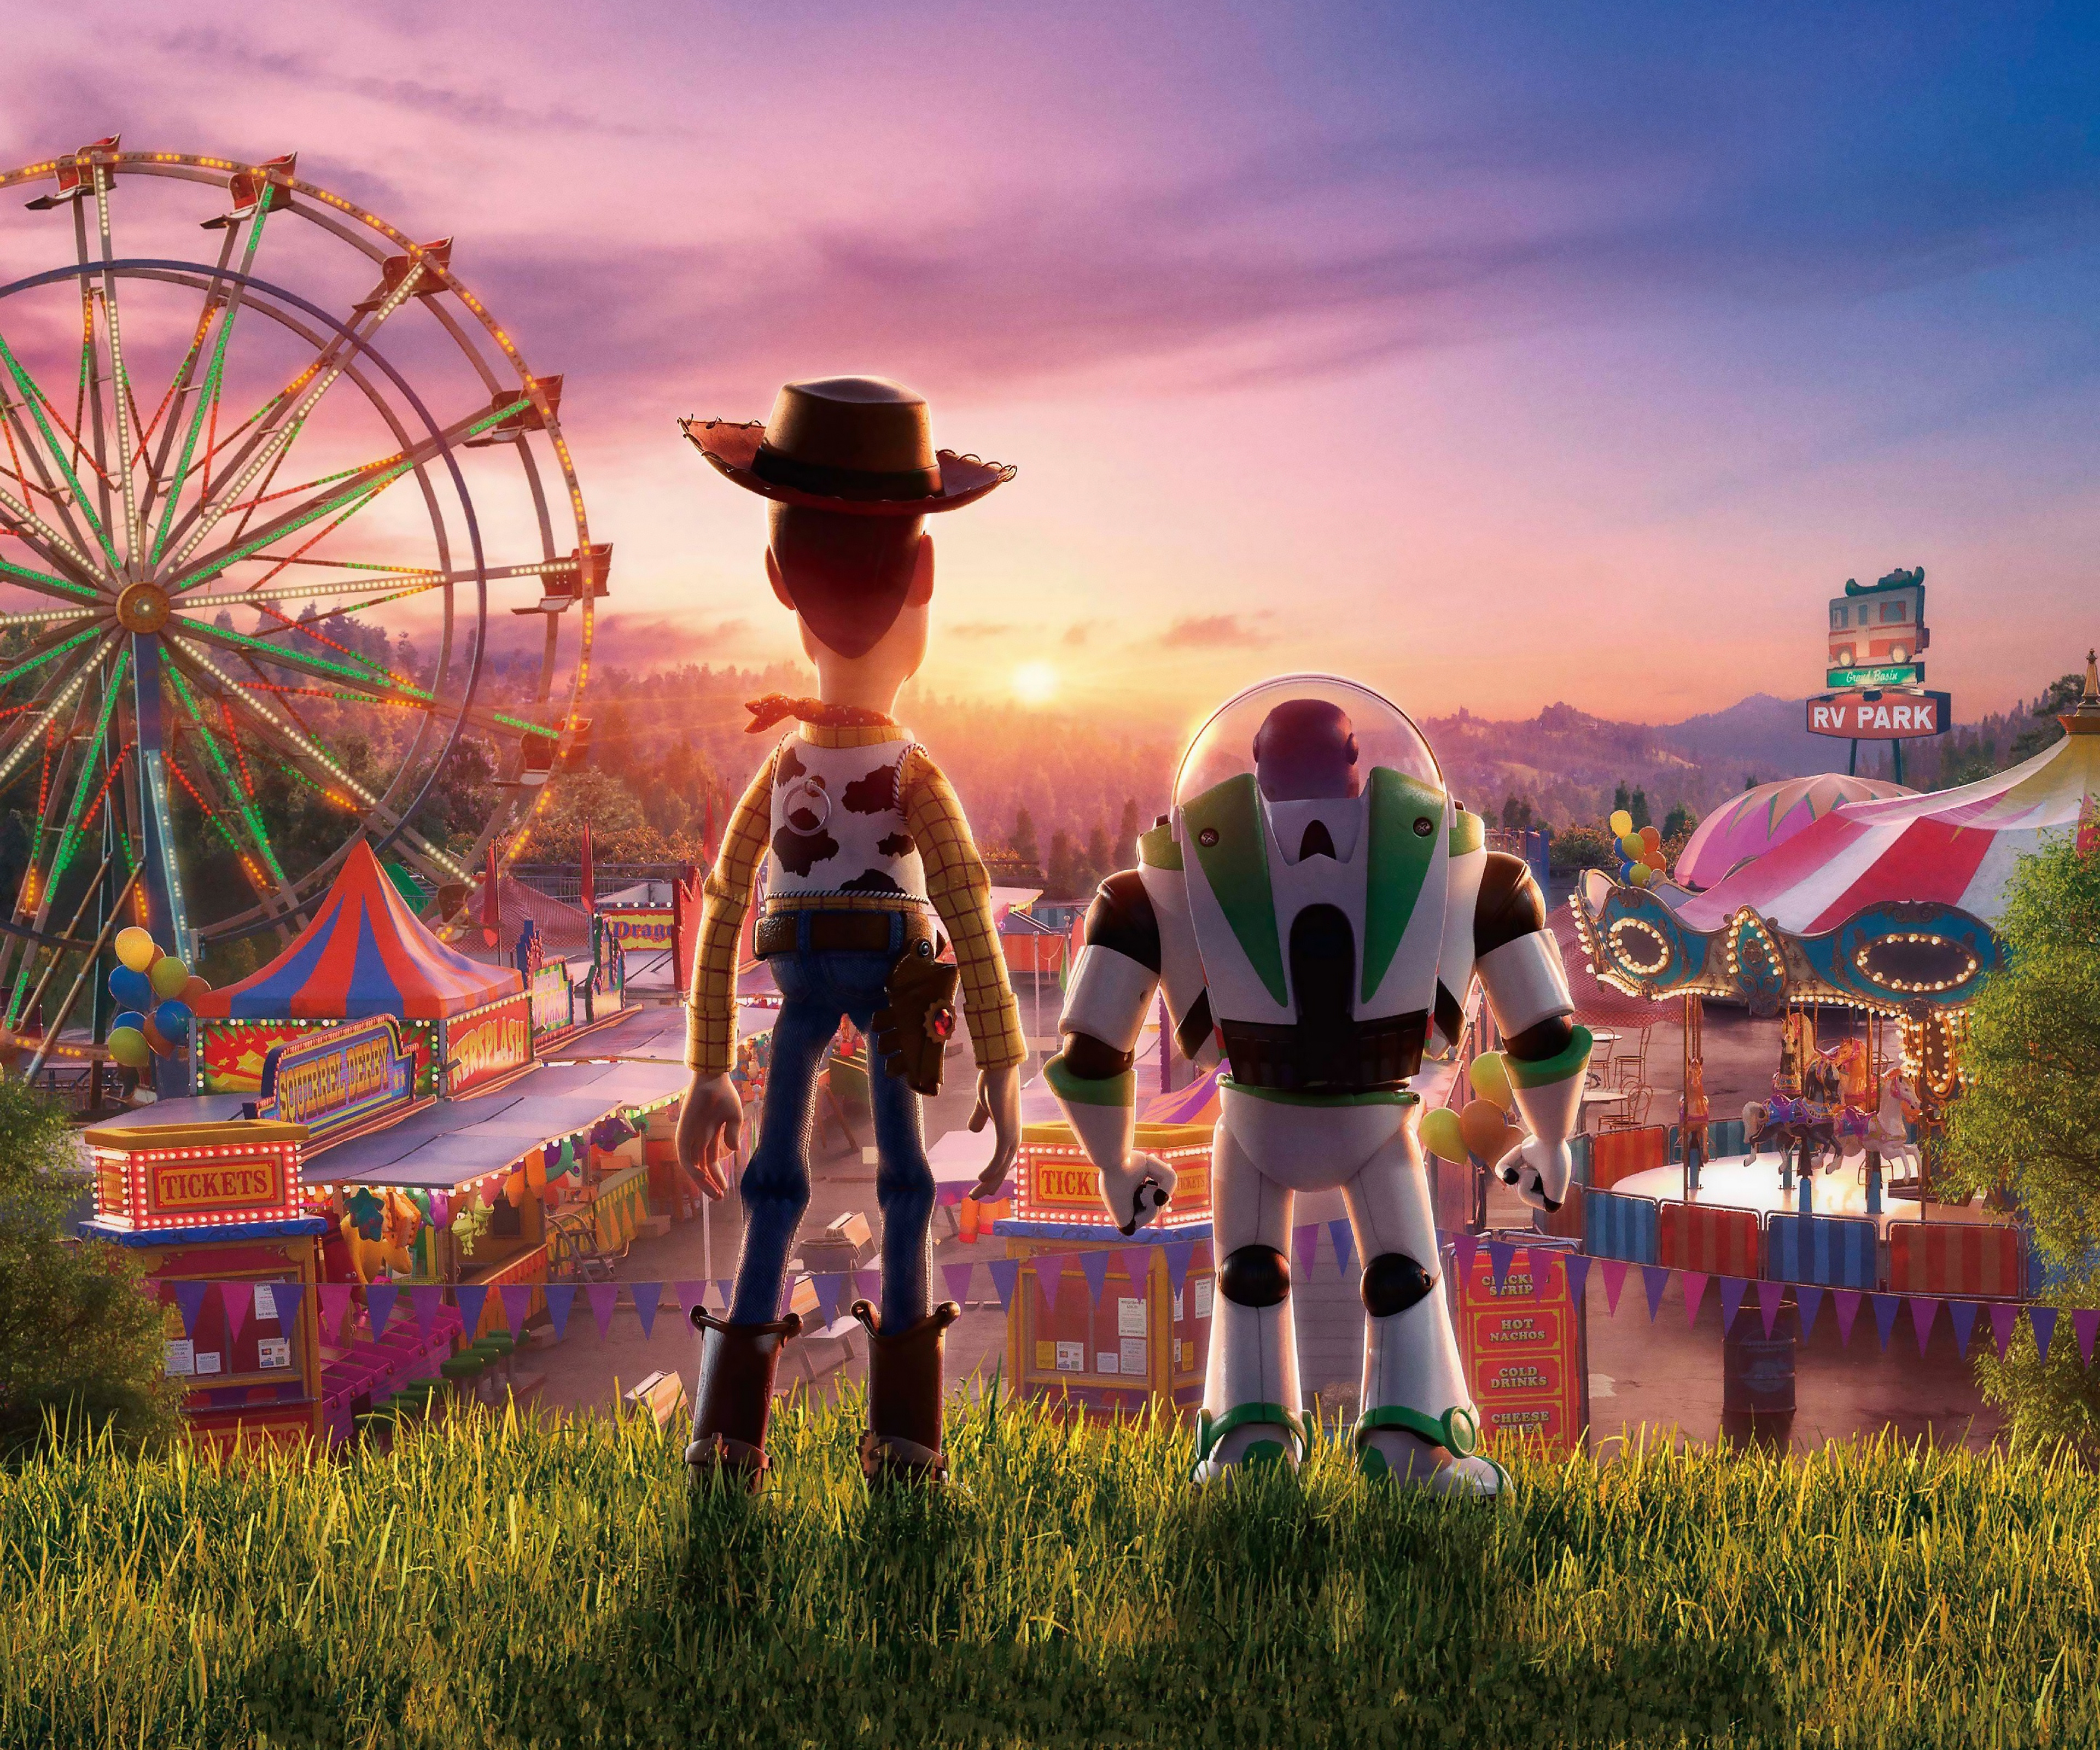 Toy Story 4 Woody And Buzz Lightyear Wallpaper 4k Ultra Hd